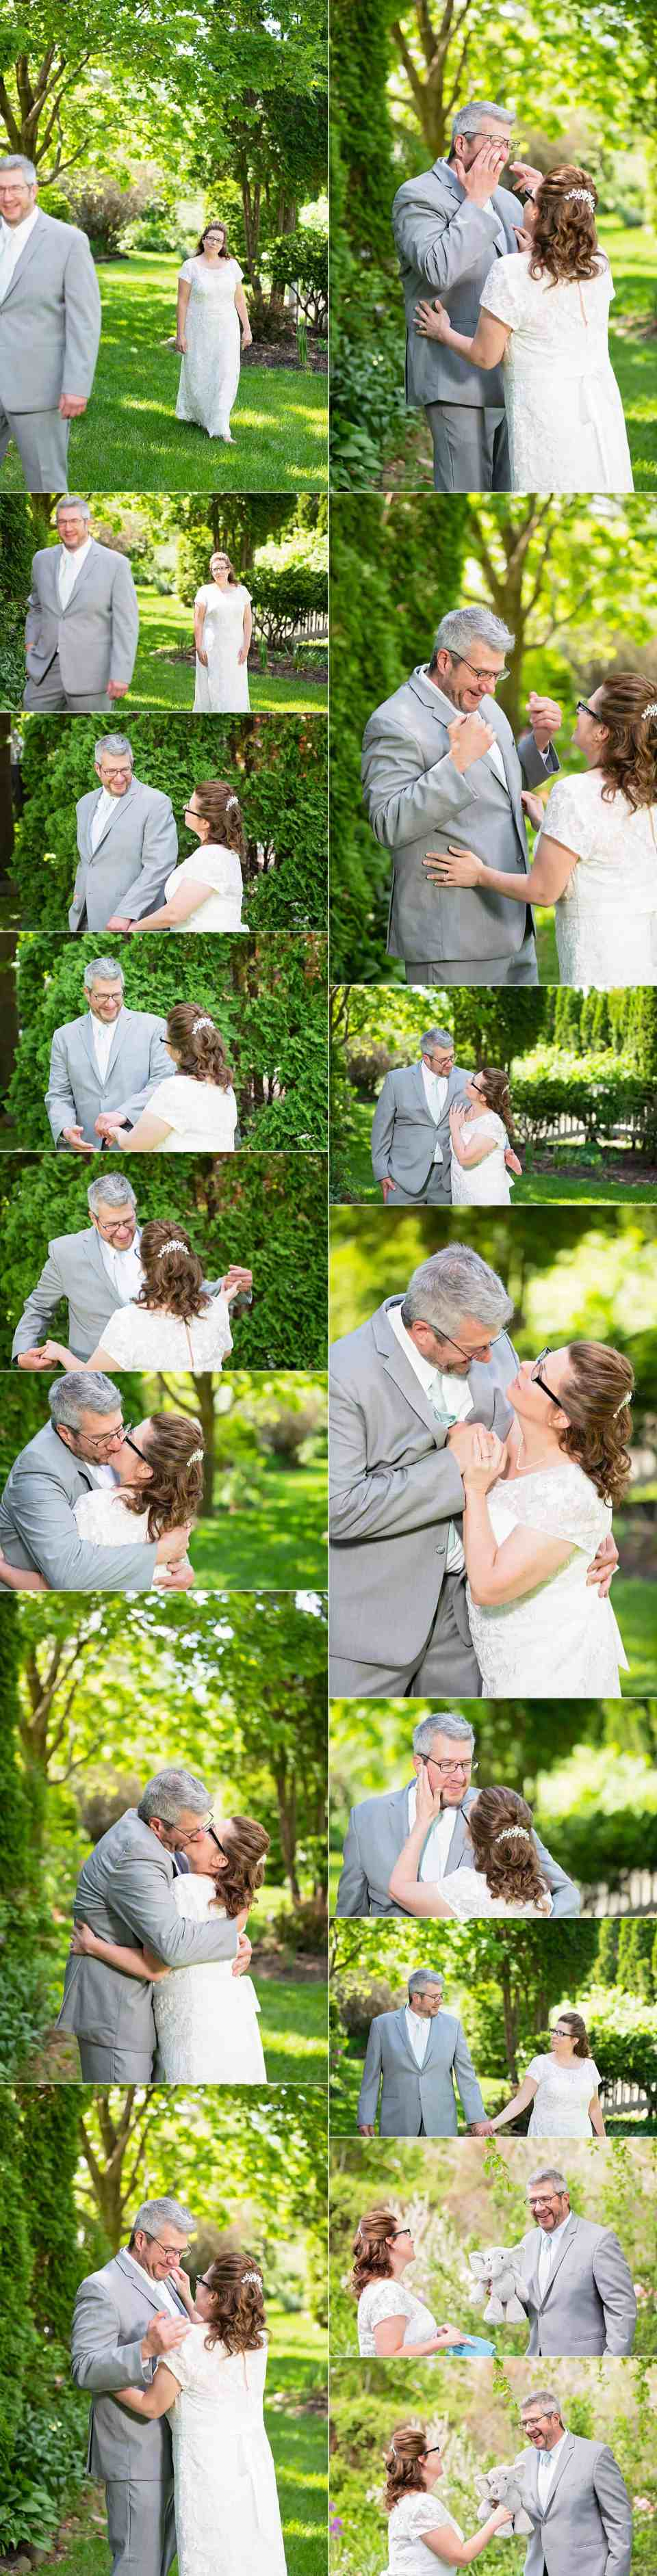 First Look at Spring Wedding at The Gardens in Allenton, WI